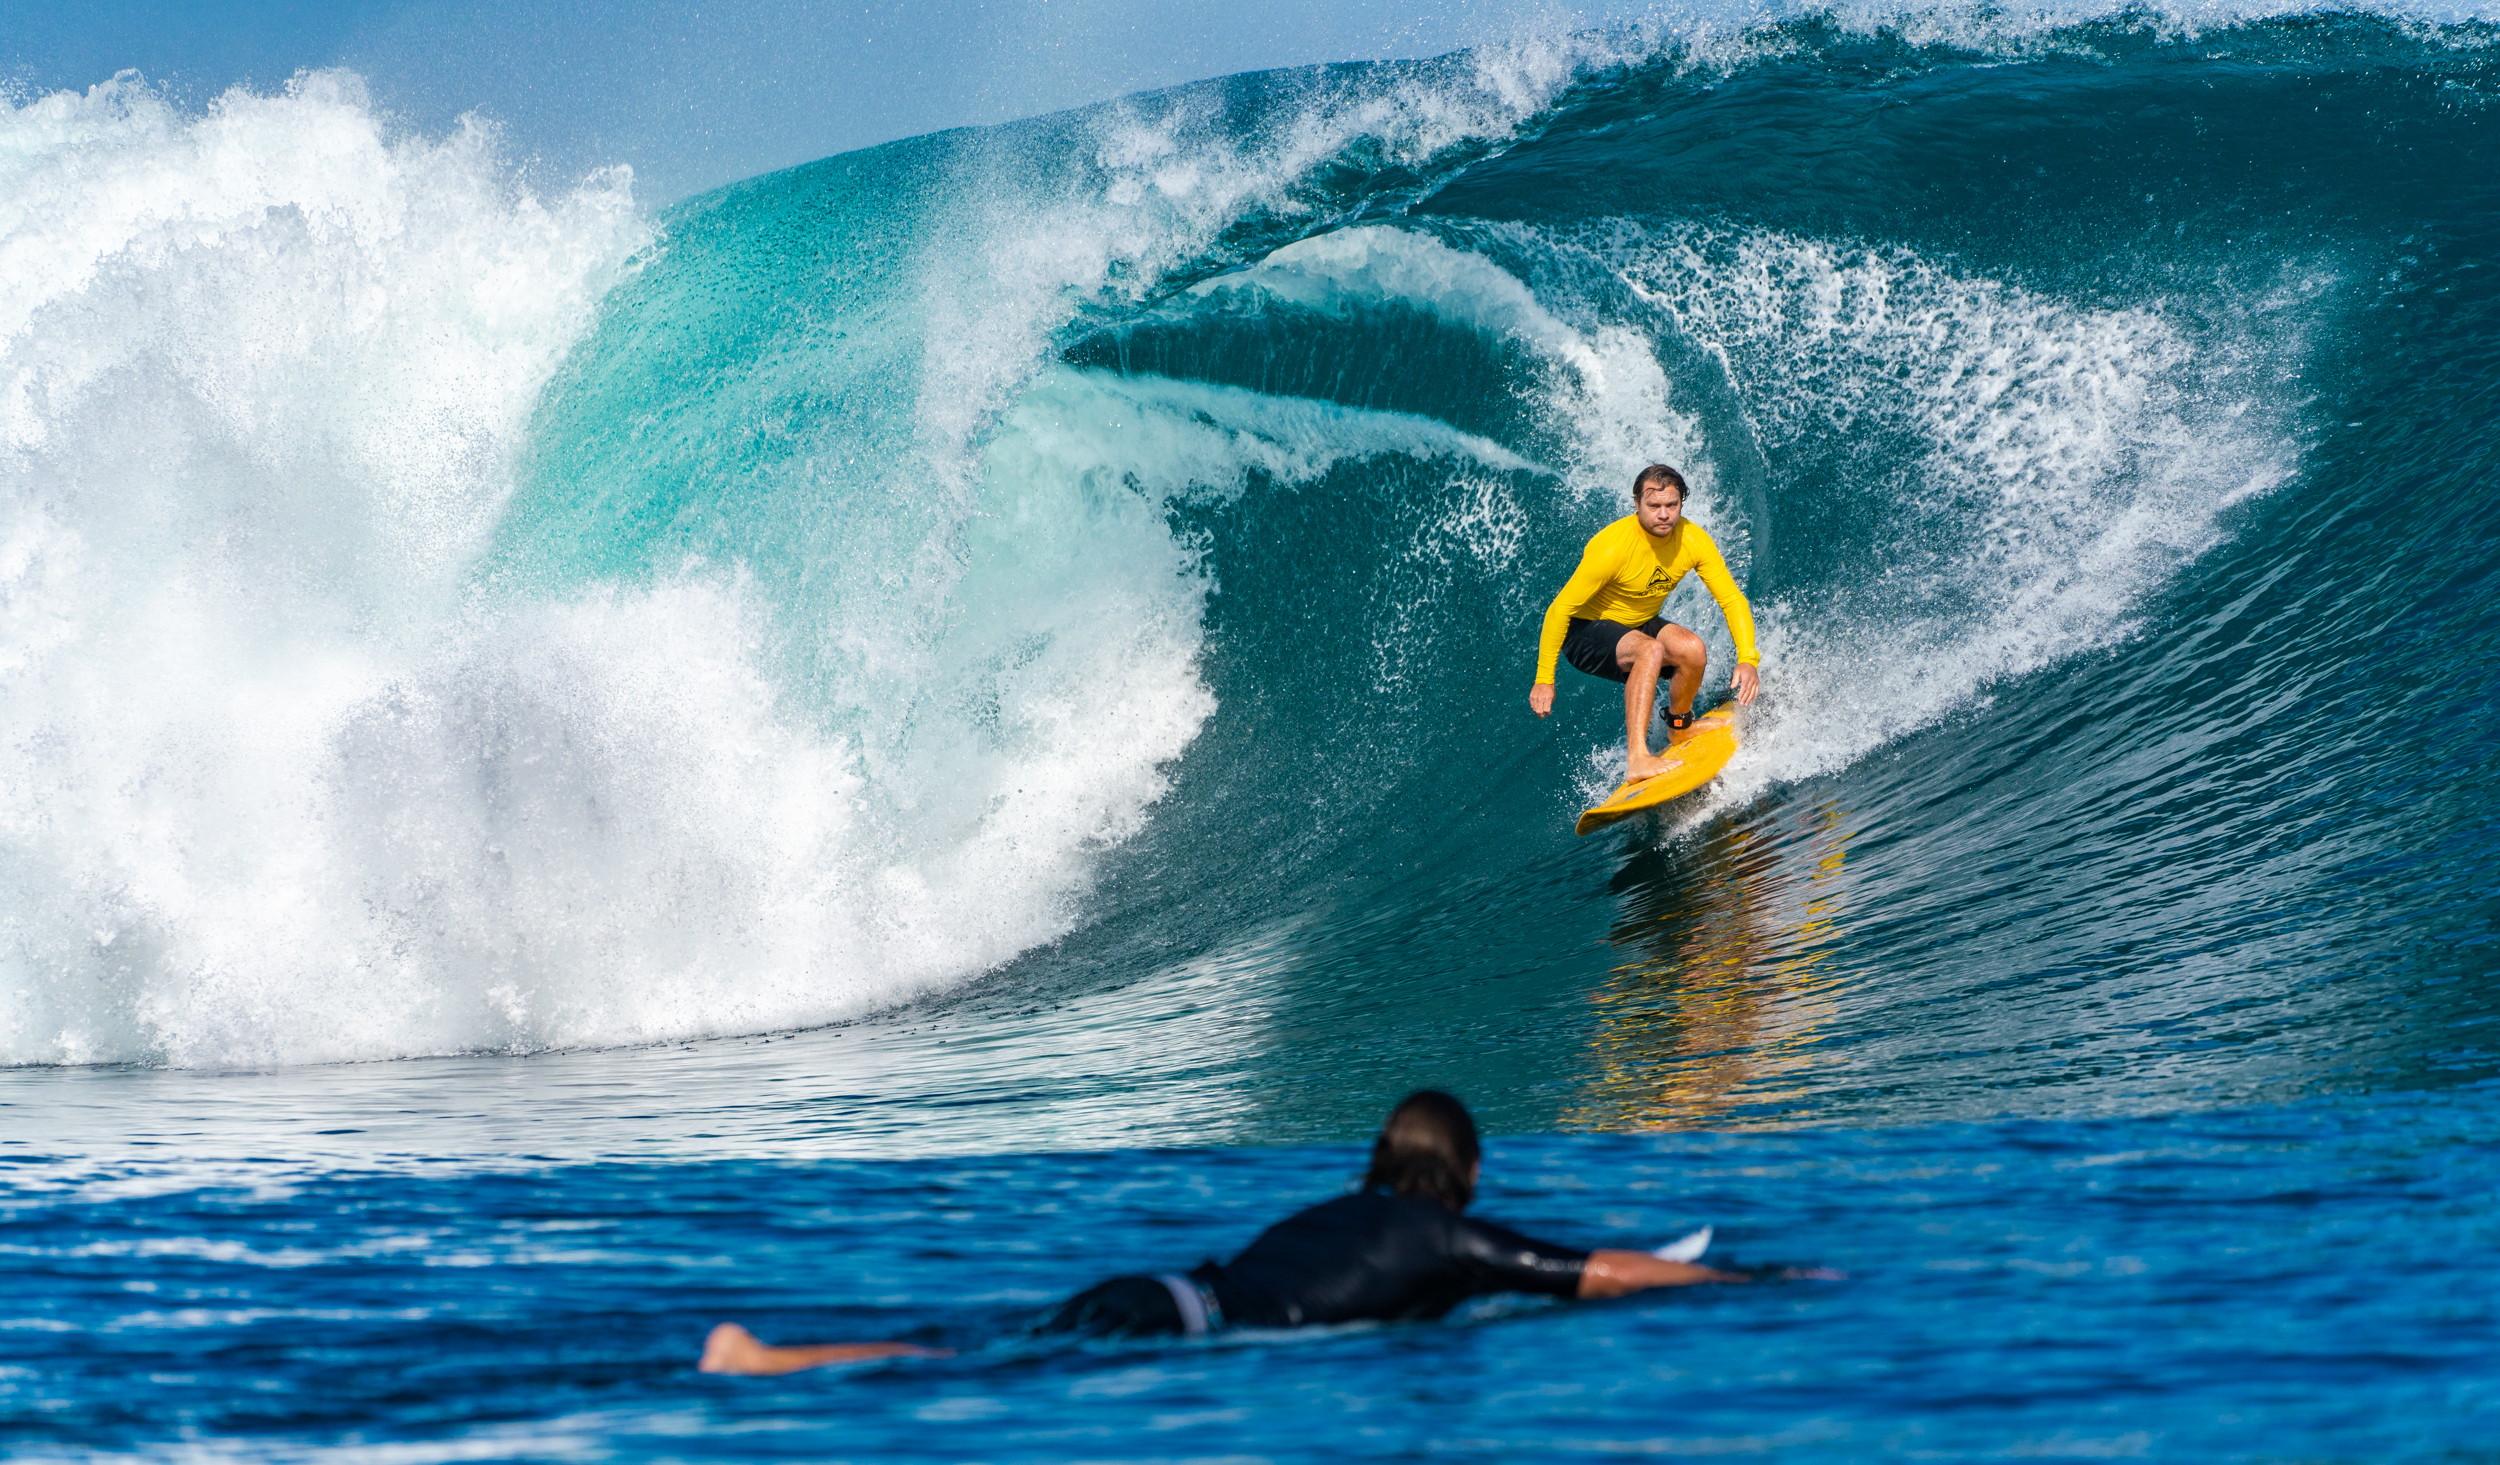 From the boat at launching pads,  a rare opportunity to shoot down the guts of a wave